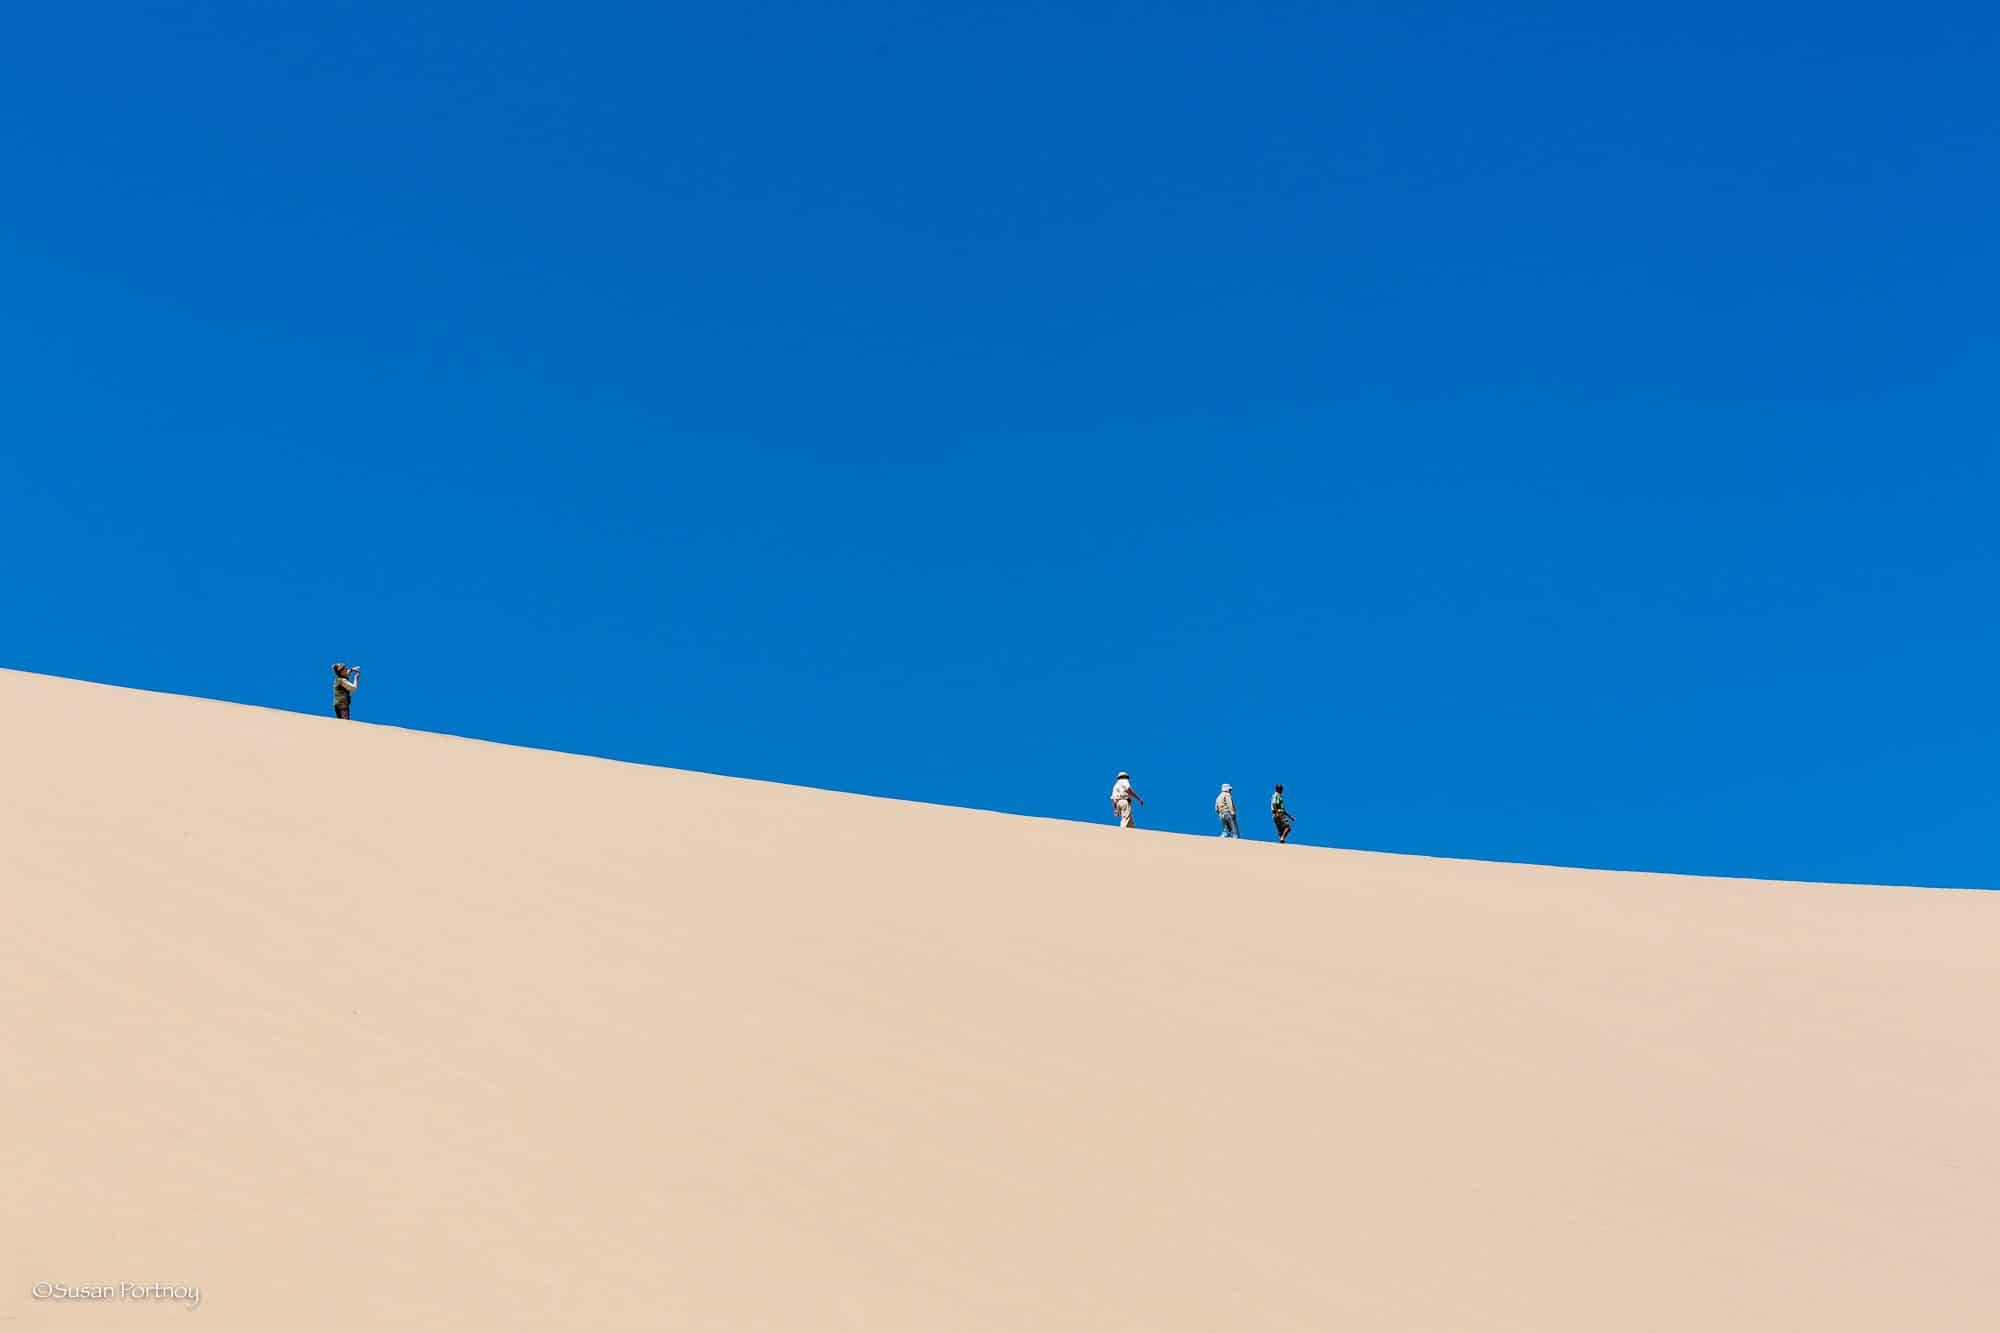 My fellow travelers atop the roaring dunes as they prepare to descend